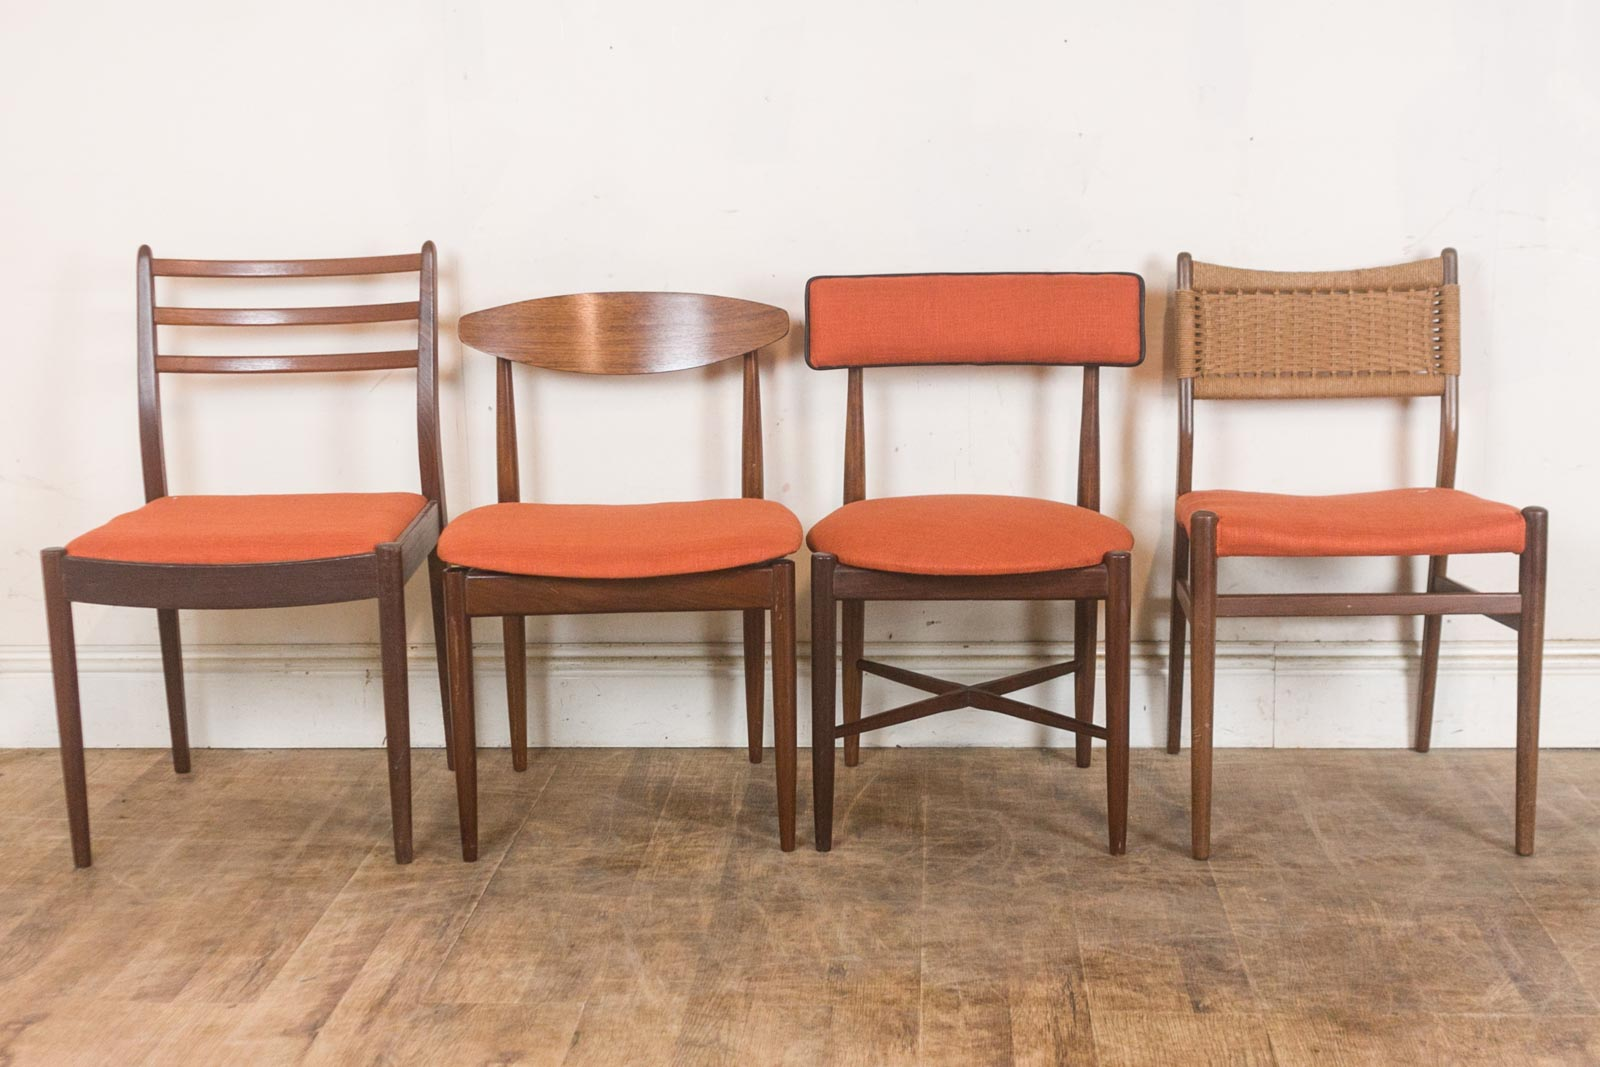 Vintage Retro G Plan Teak Oval Dining Table and 4 Mixed G  : hV040613 9 from www.ebay.co.uk size 1600 x 1067 jpeg 195kB